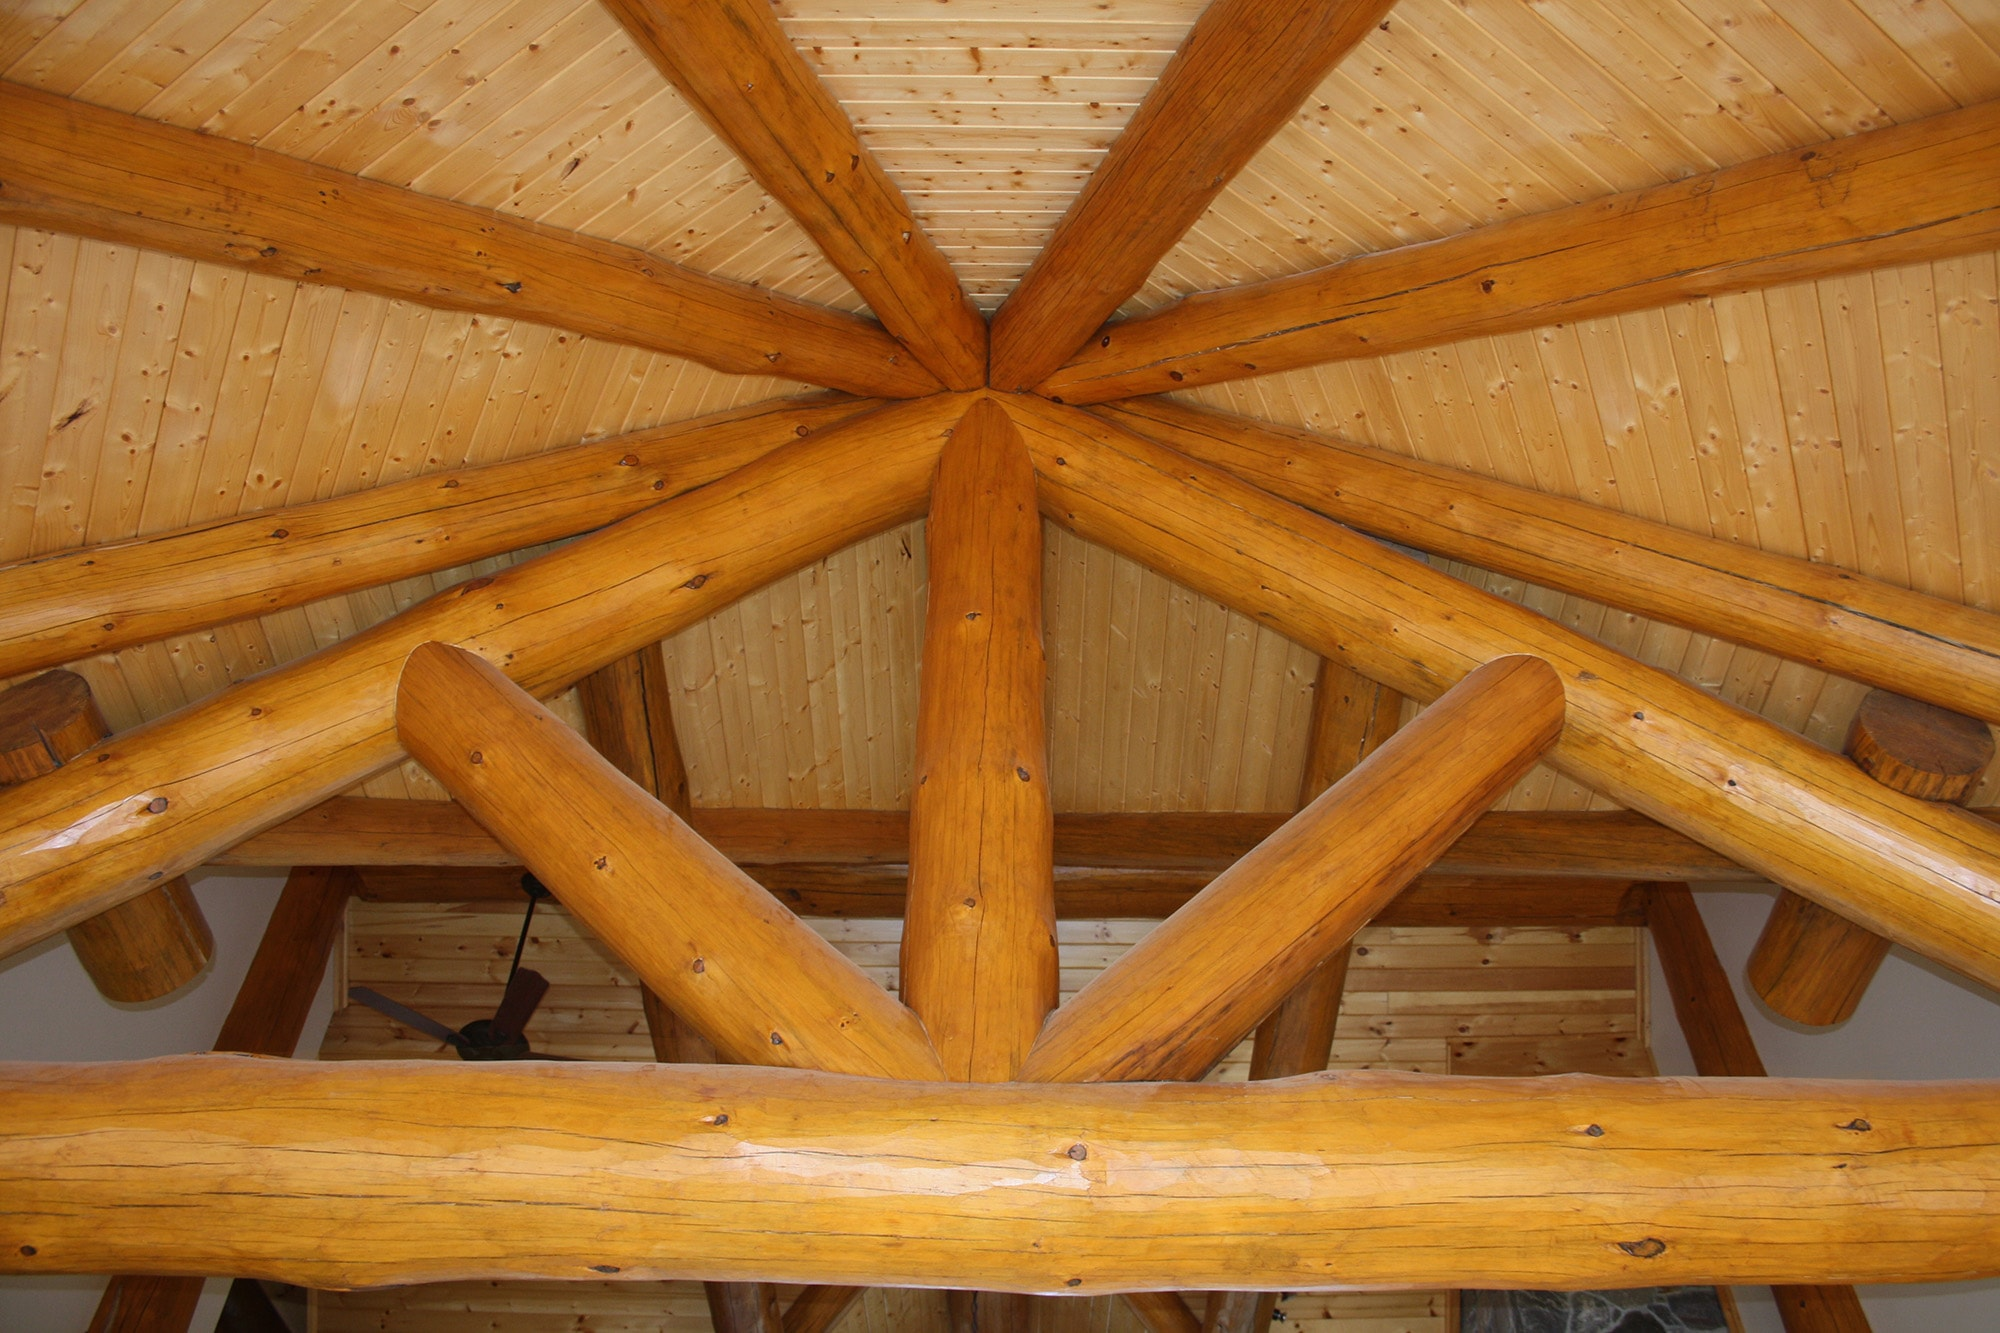 Incredible log joinery for roof